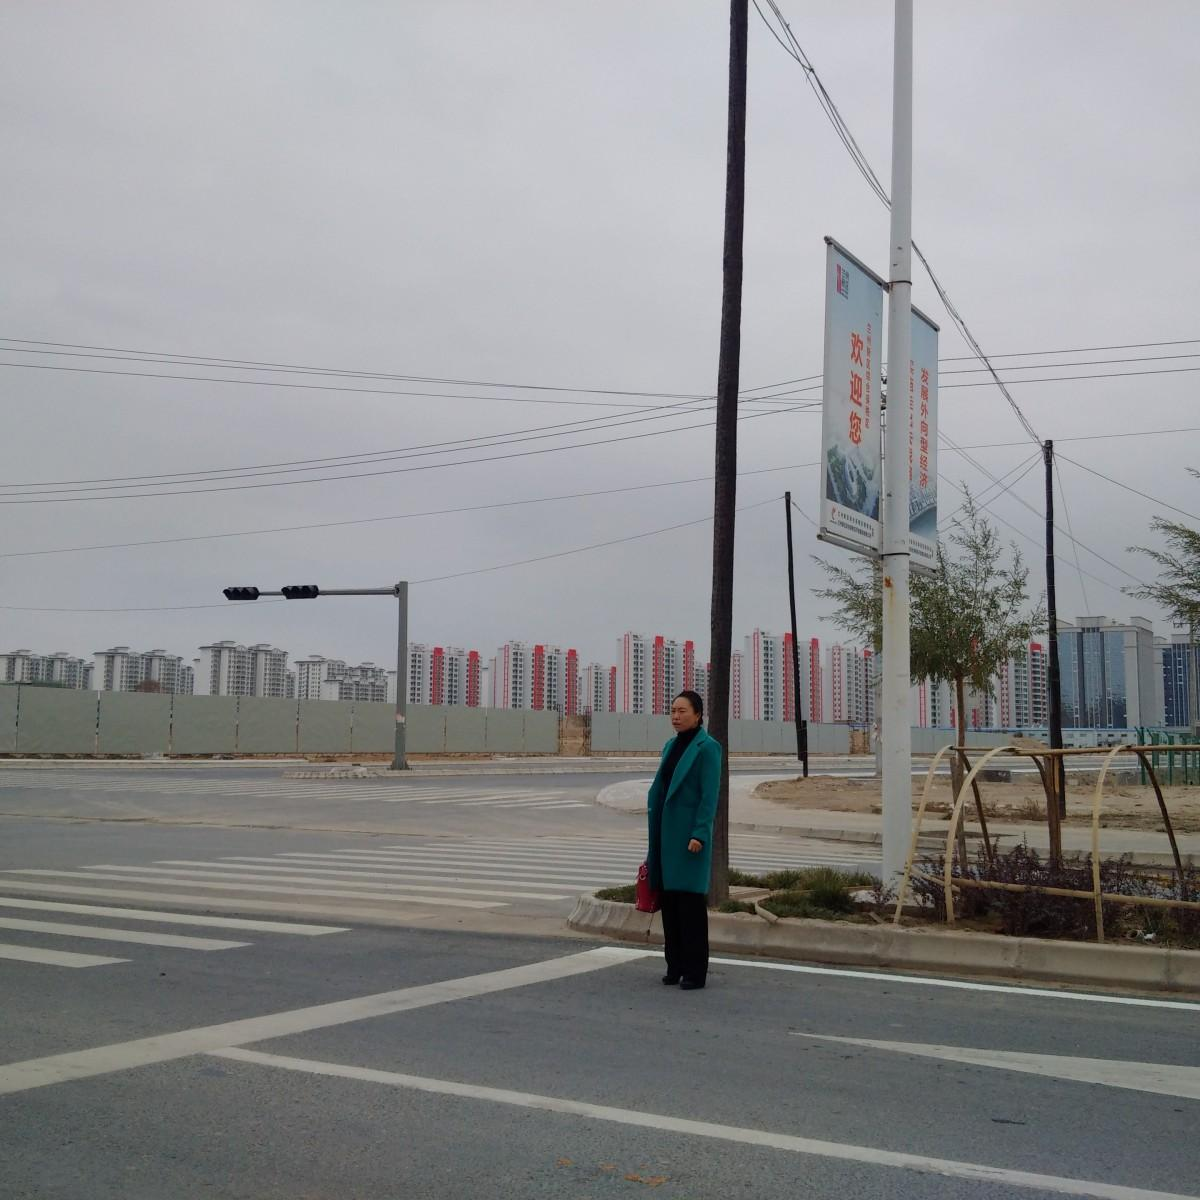 Lanzhou New Area. (Photo by the author)